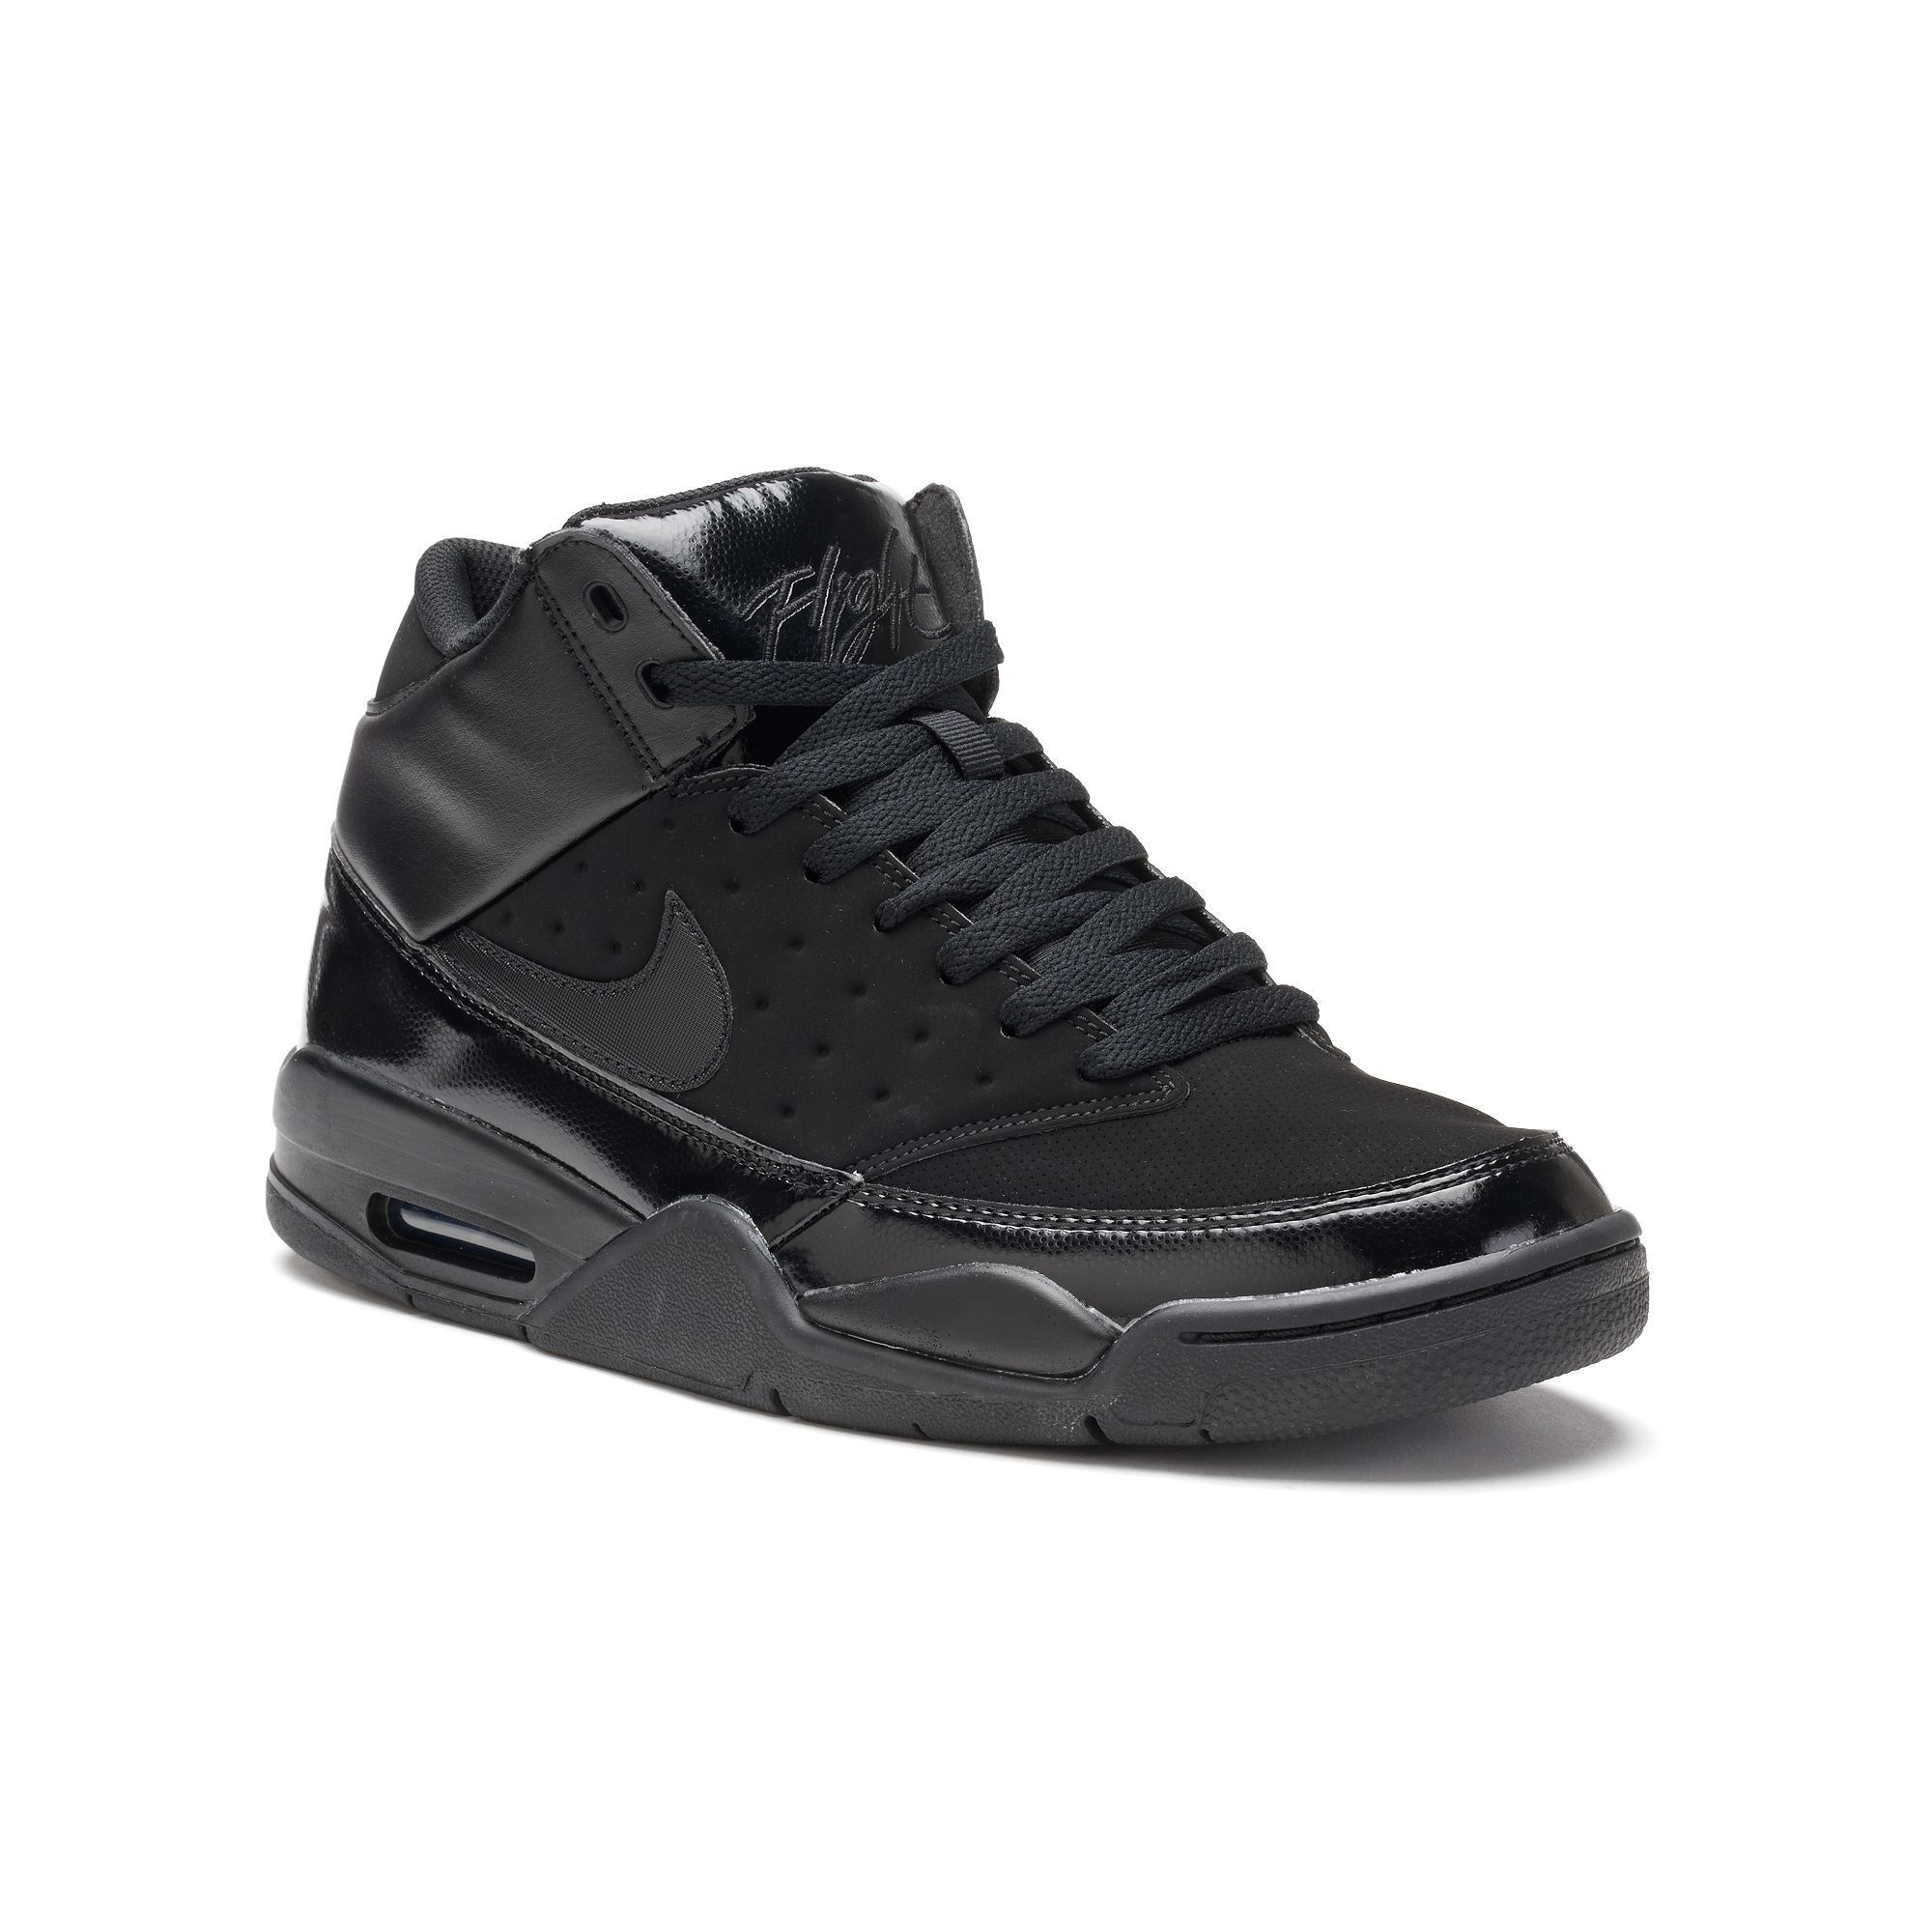 latest most popular top quality Nike Air Flight Classic Men's Basketball Shoes | Mens grey shoes ...